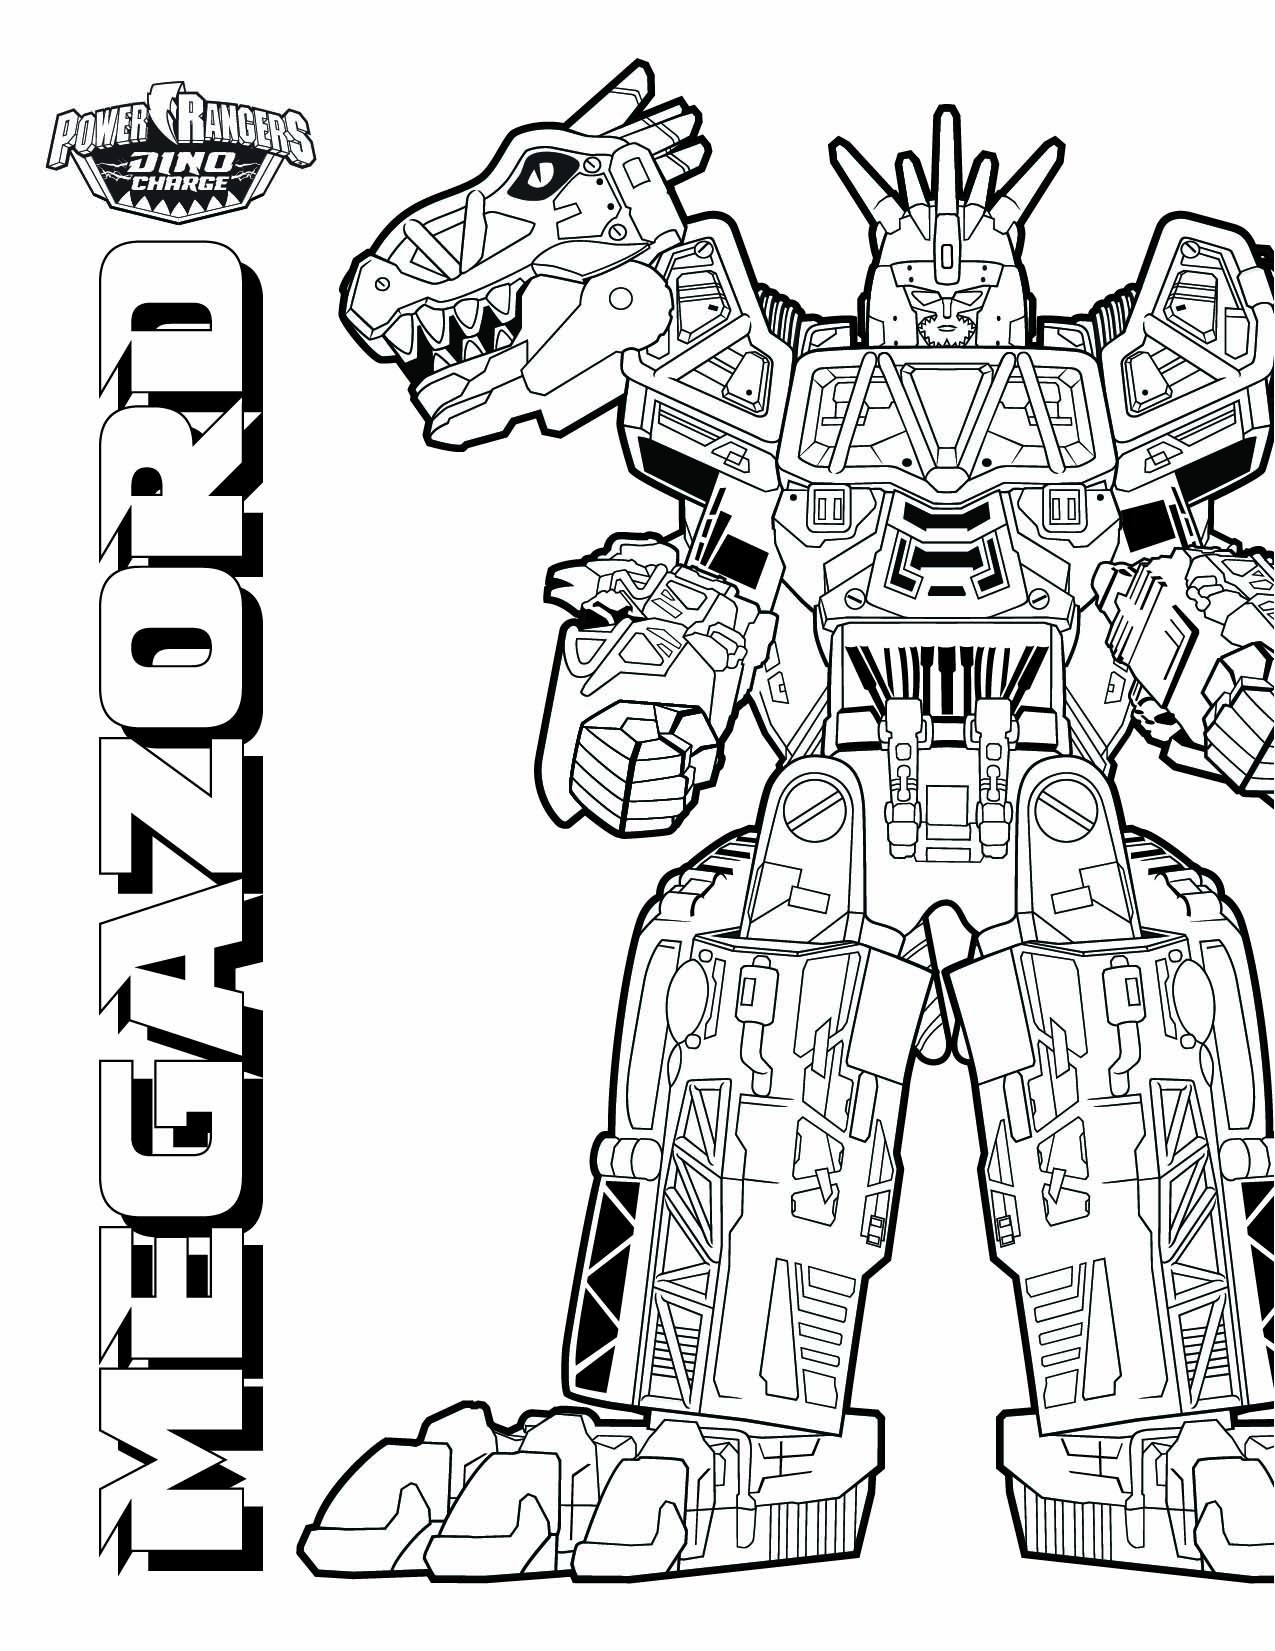 dino-zord-coloring-pages-of-dino-zord-coloring-pages Dino Zord Coloring Pages Dinosaurs